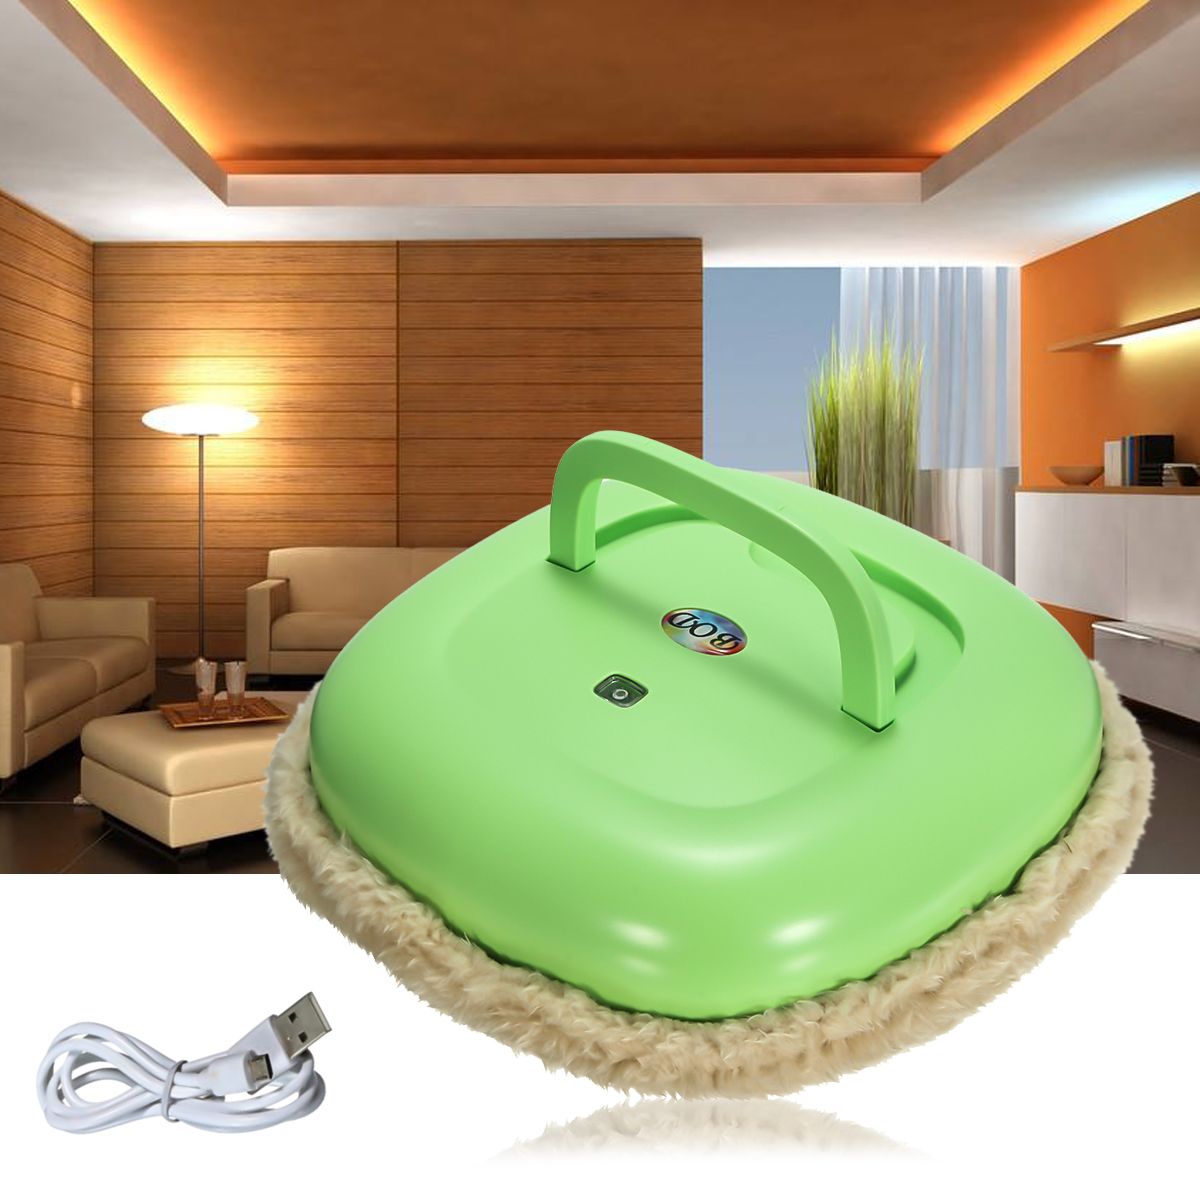 Washable Microfiber Mop Robot Vacuum Cleaner Household Cleaning Robot Wet or Dry Mop